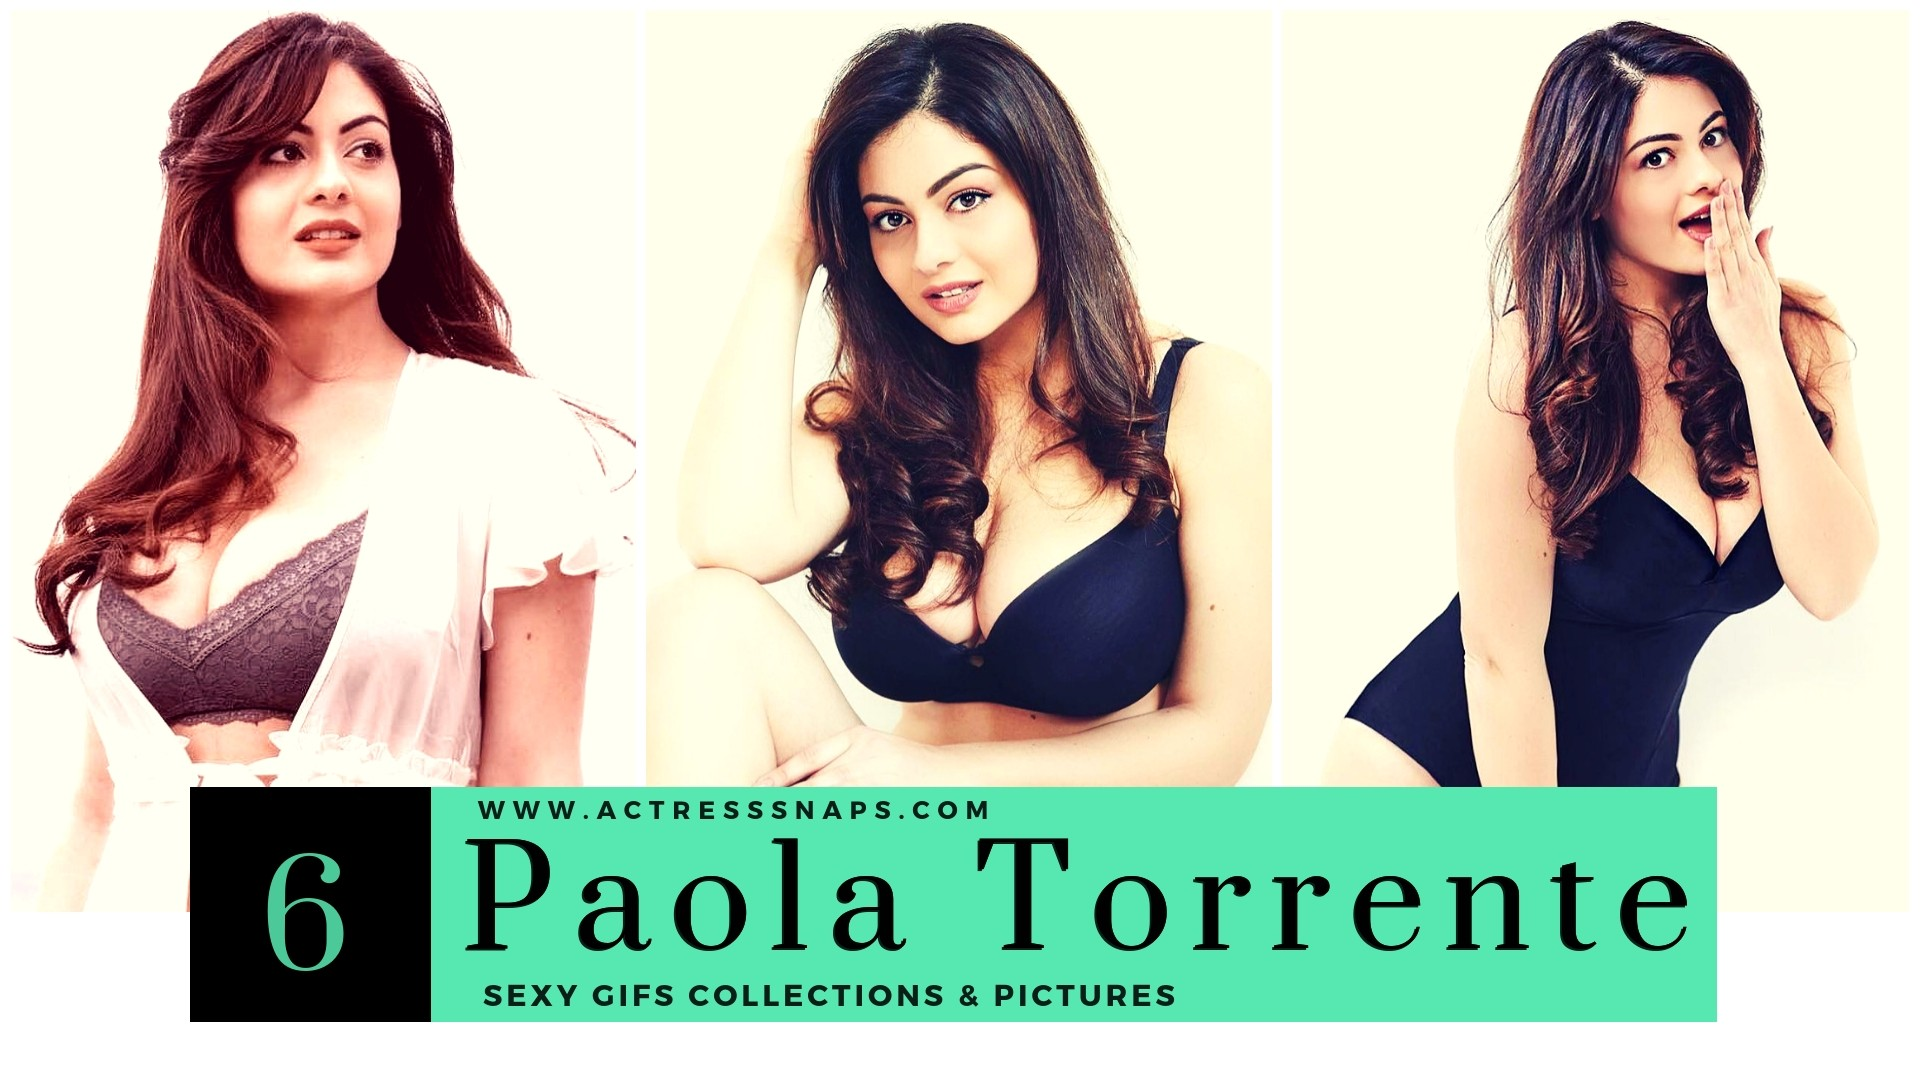 Sexy Paola Torrente GIFs Collection - Sexy Actress Pictures | Hot Actress Pictures - ActressSnaps.com